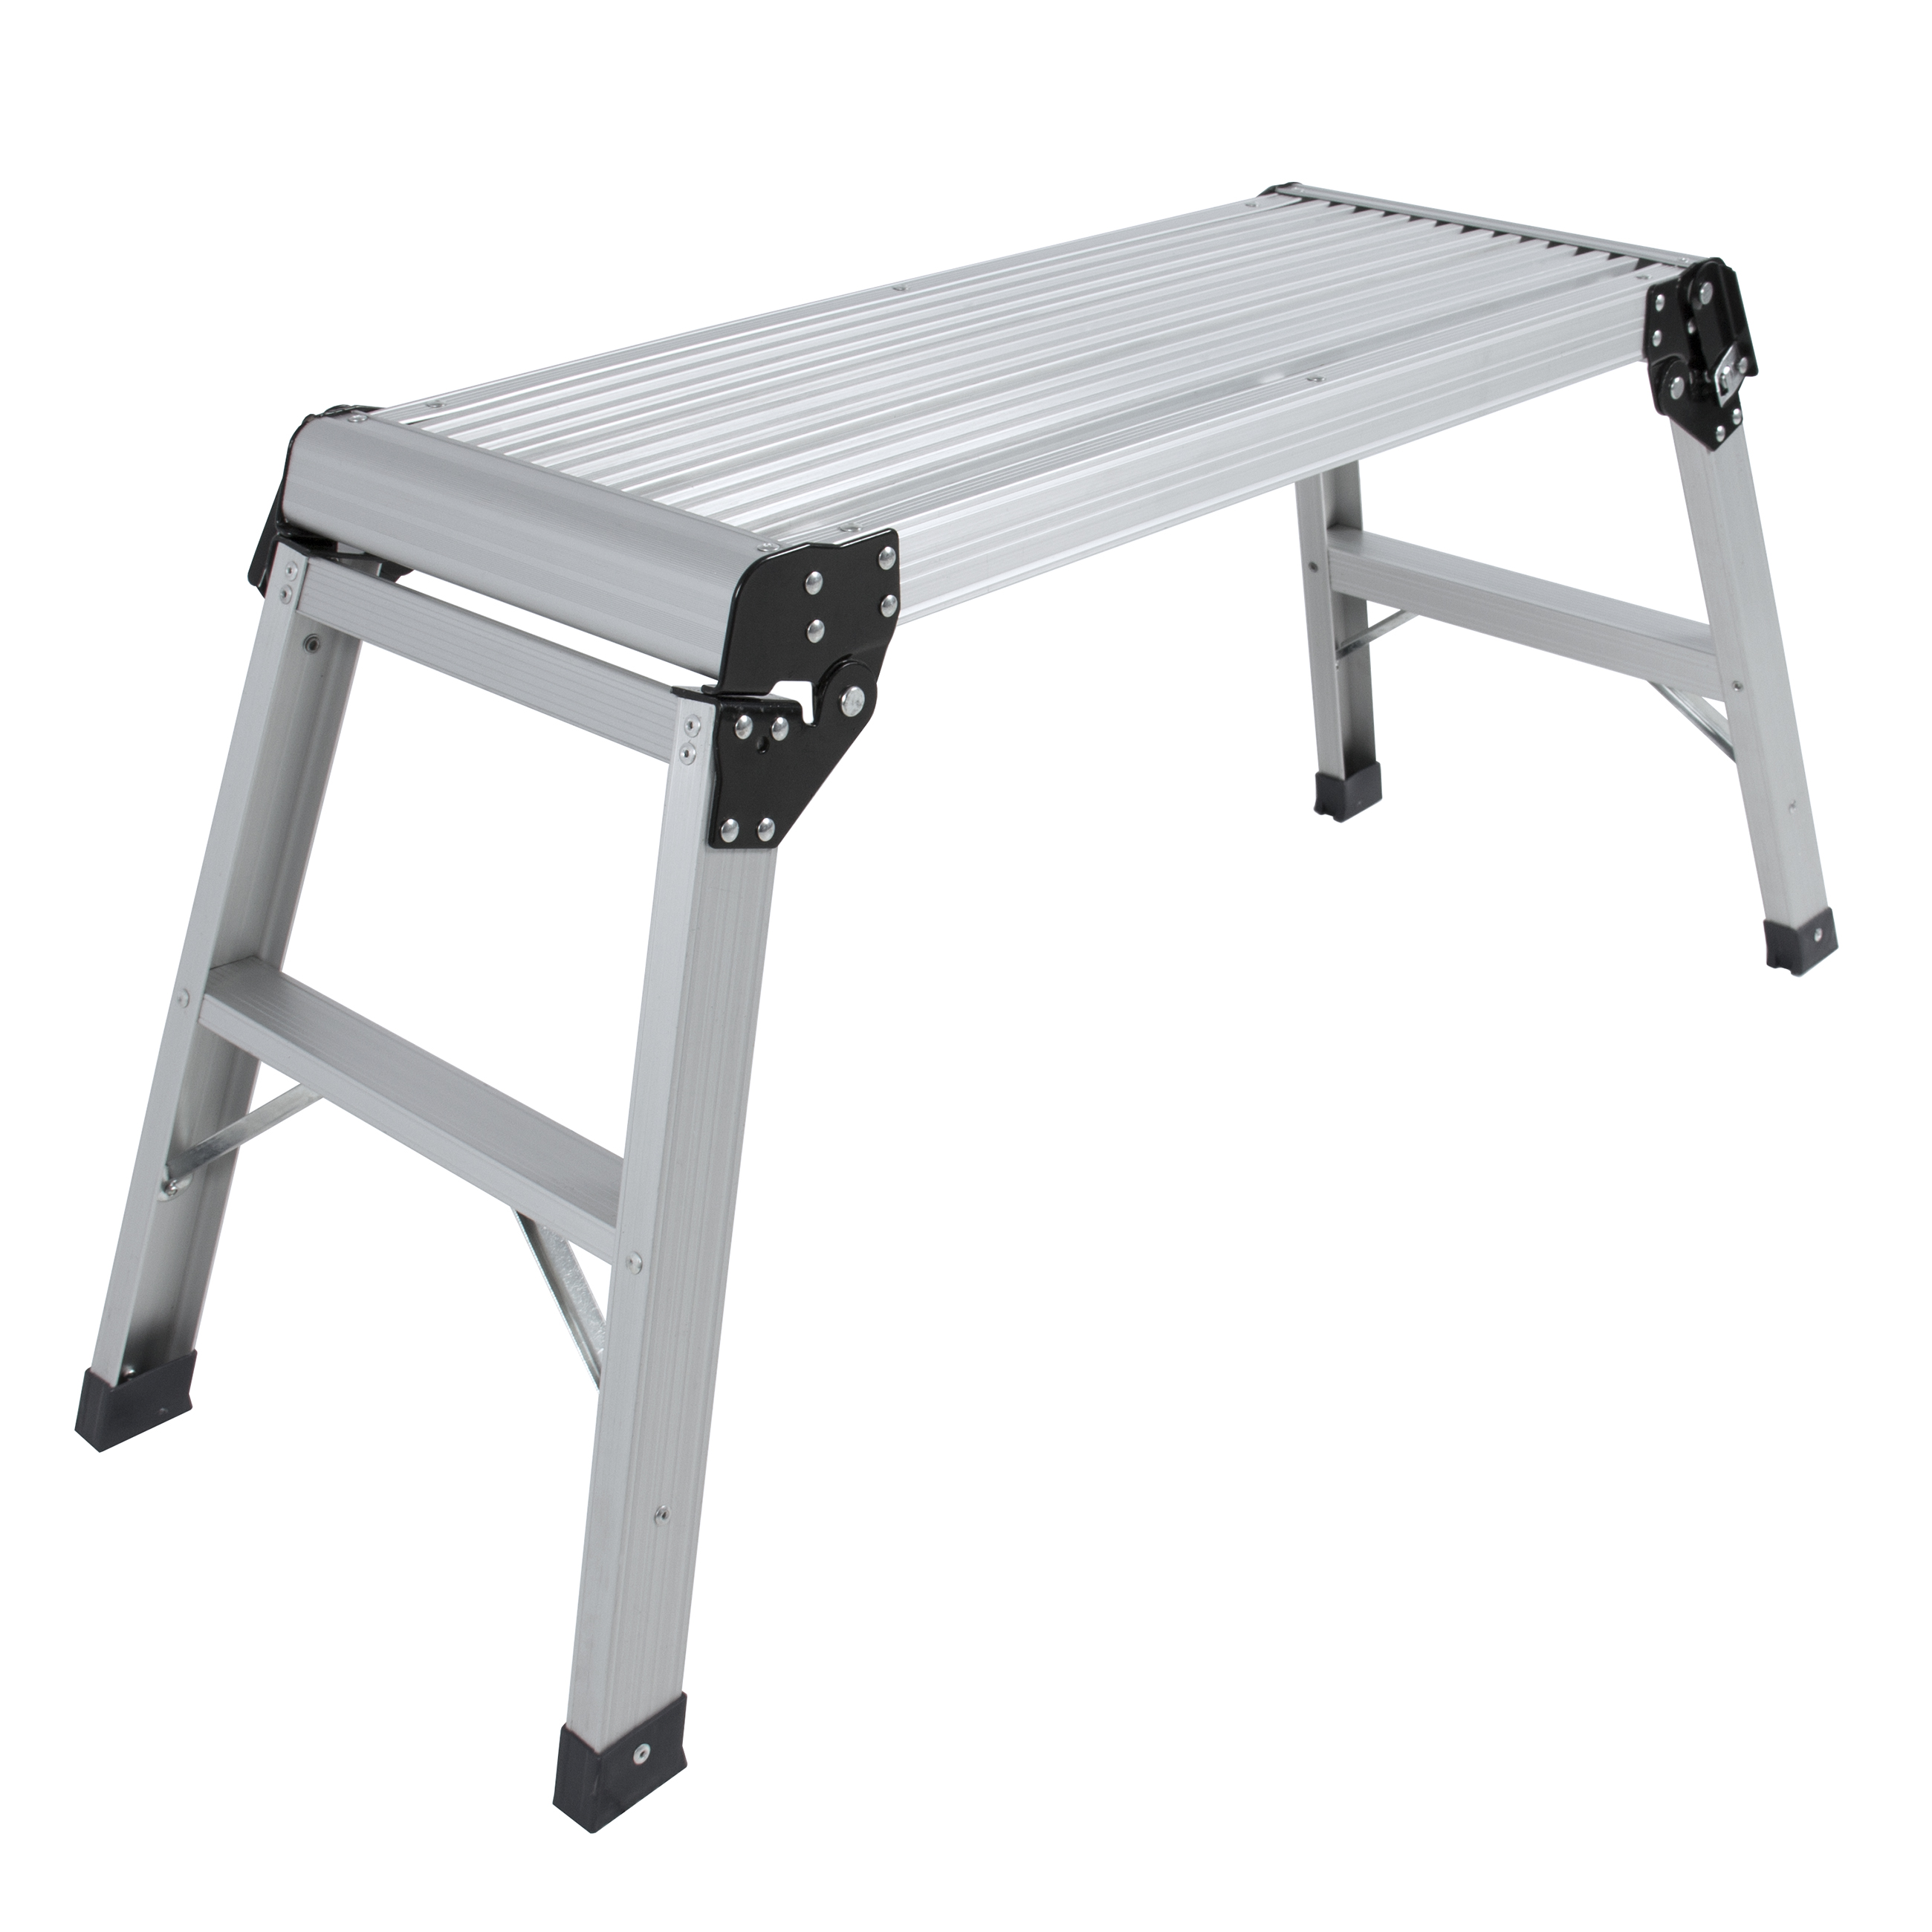 BCP Certified EN131 Aluminum Platform Drywall Step Up Folding Work Bench Stool Ladder  sc 1 st  Walmart & BCP Certified EN131 Aluminum Platform Drywall Step Up Folding Work ... islam-shia.org